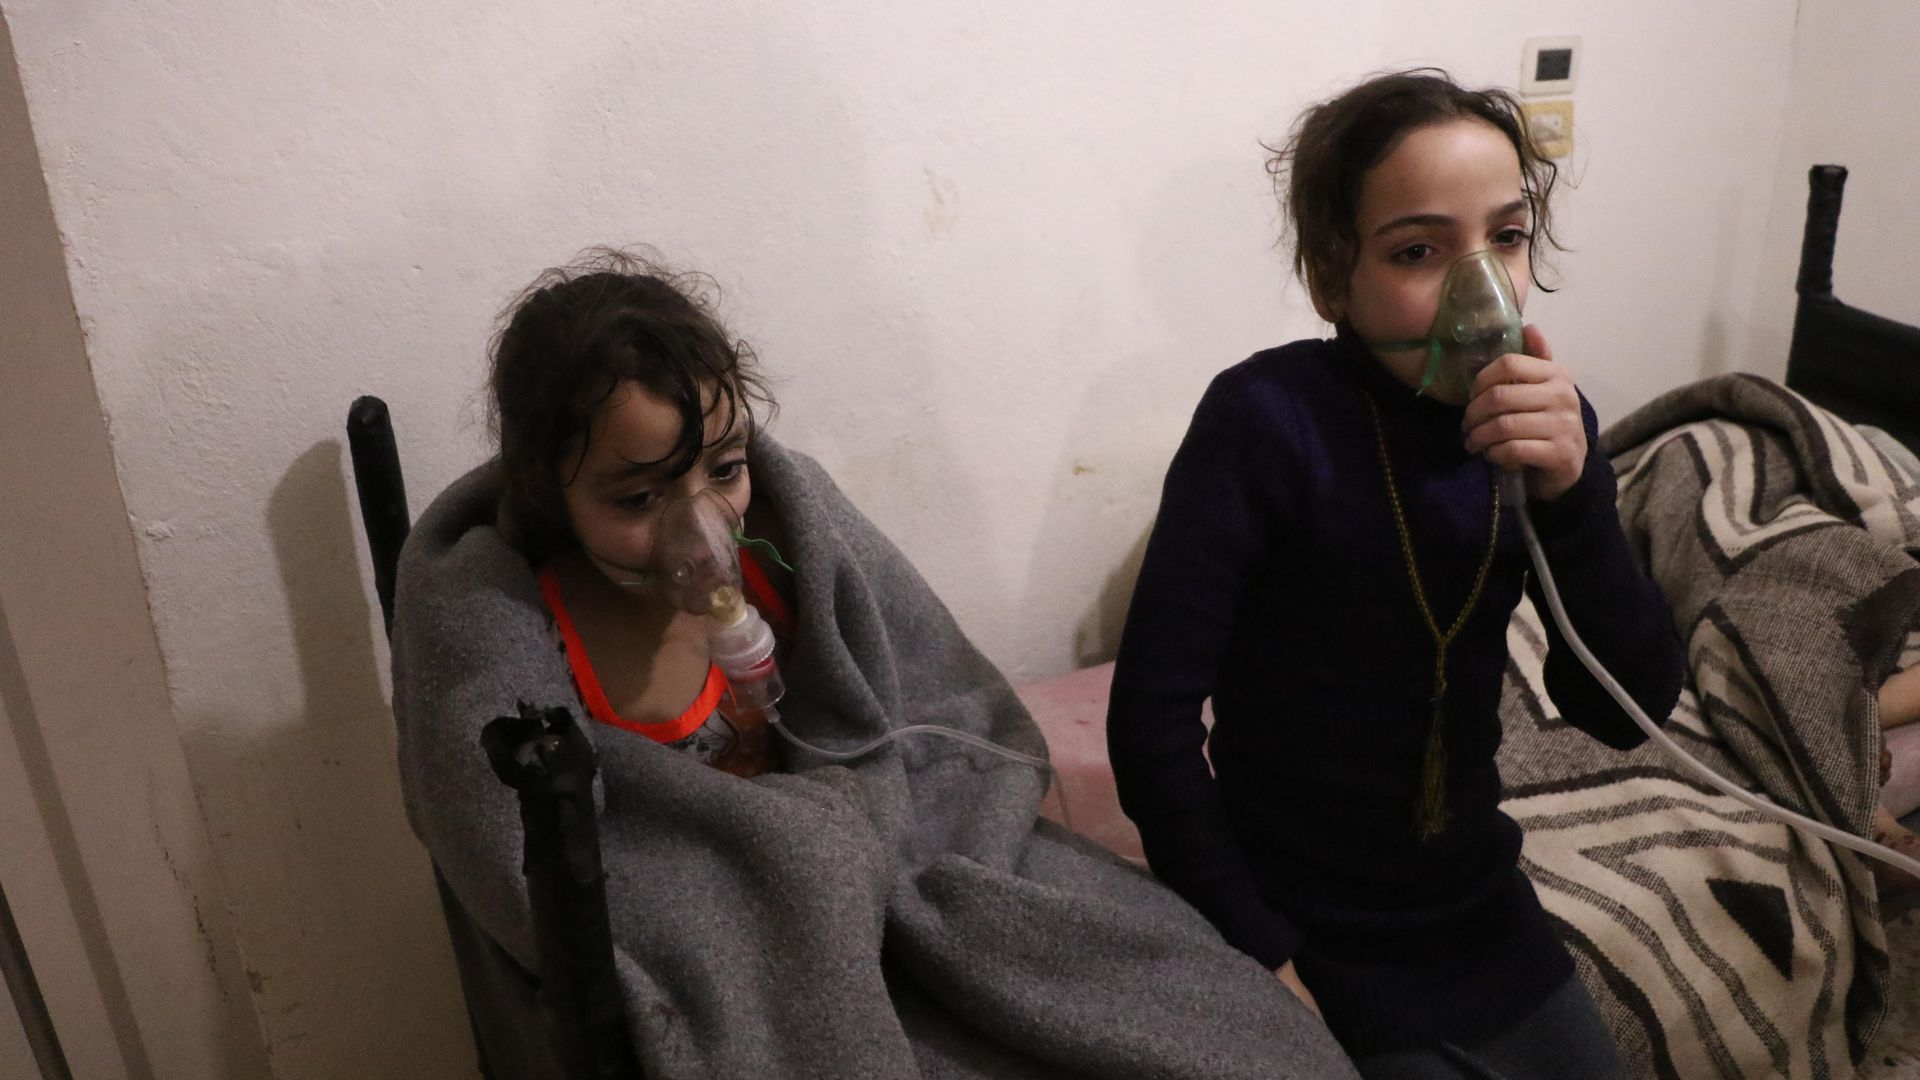 Affected children receive medical treatment after Assad regime forces conduct allegedly poisonous gas attack in Eastern Ghouta on March 7.